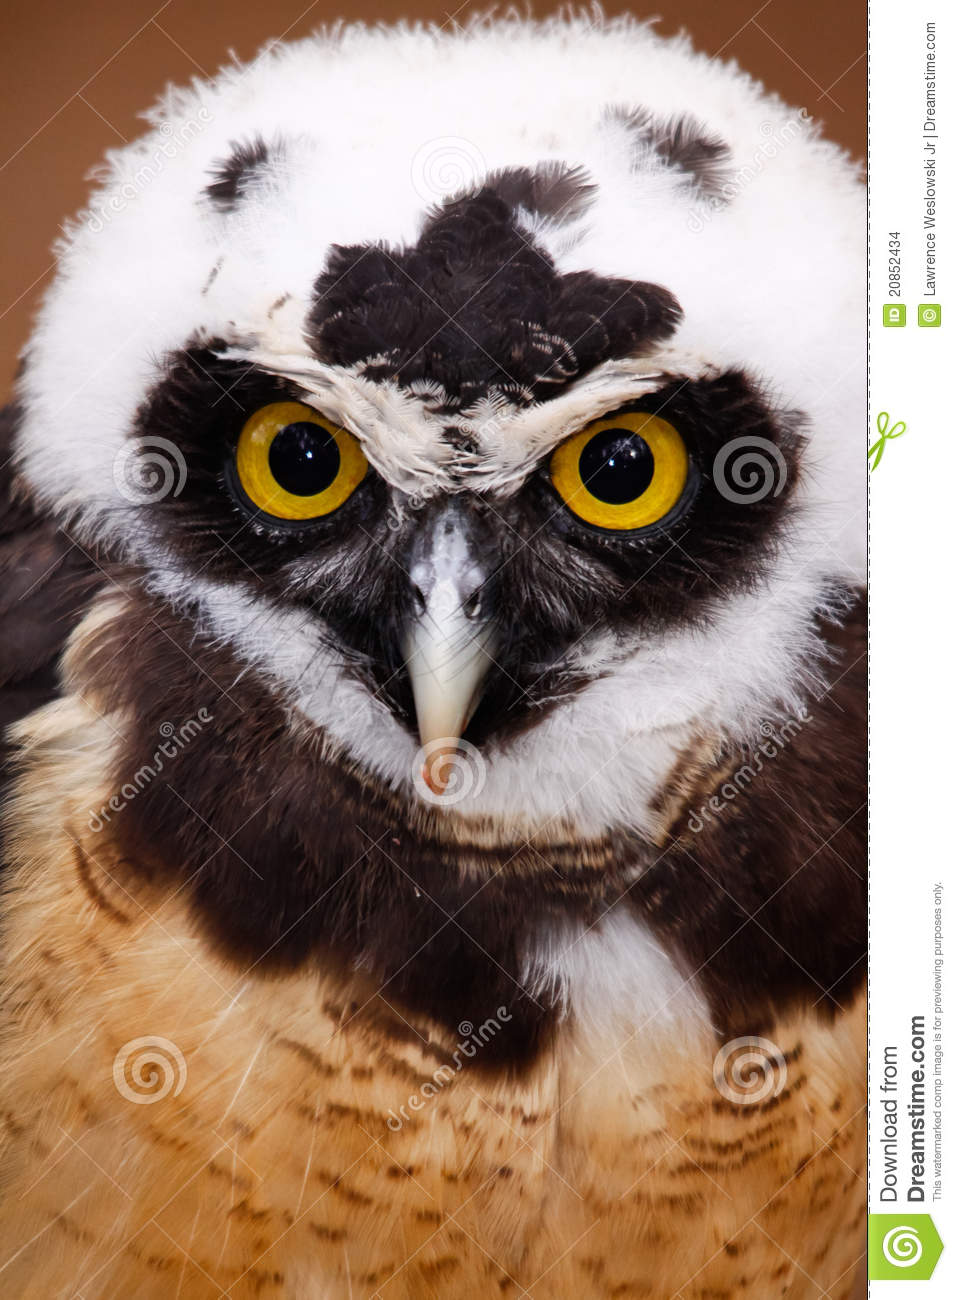 Intense Stare Of A Spectacled Owl Stock Photo Image Of